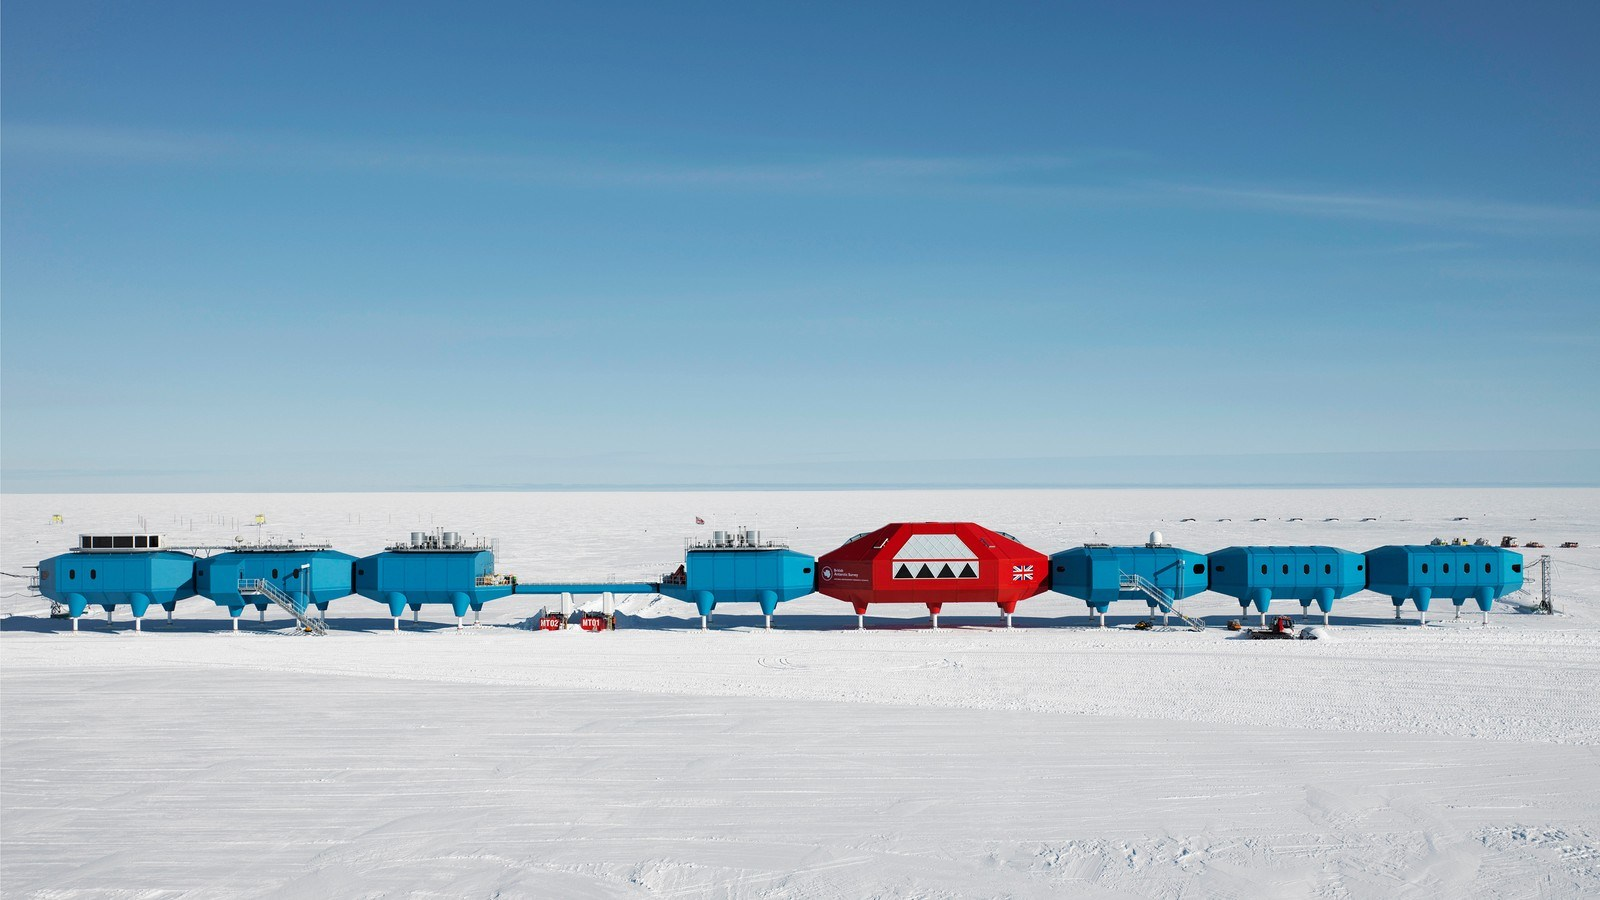 Antarctica, Sur Pole, Cold, Extreme, Isolated, Stress, Confinement, India, Research